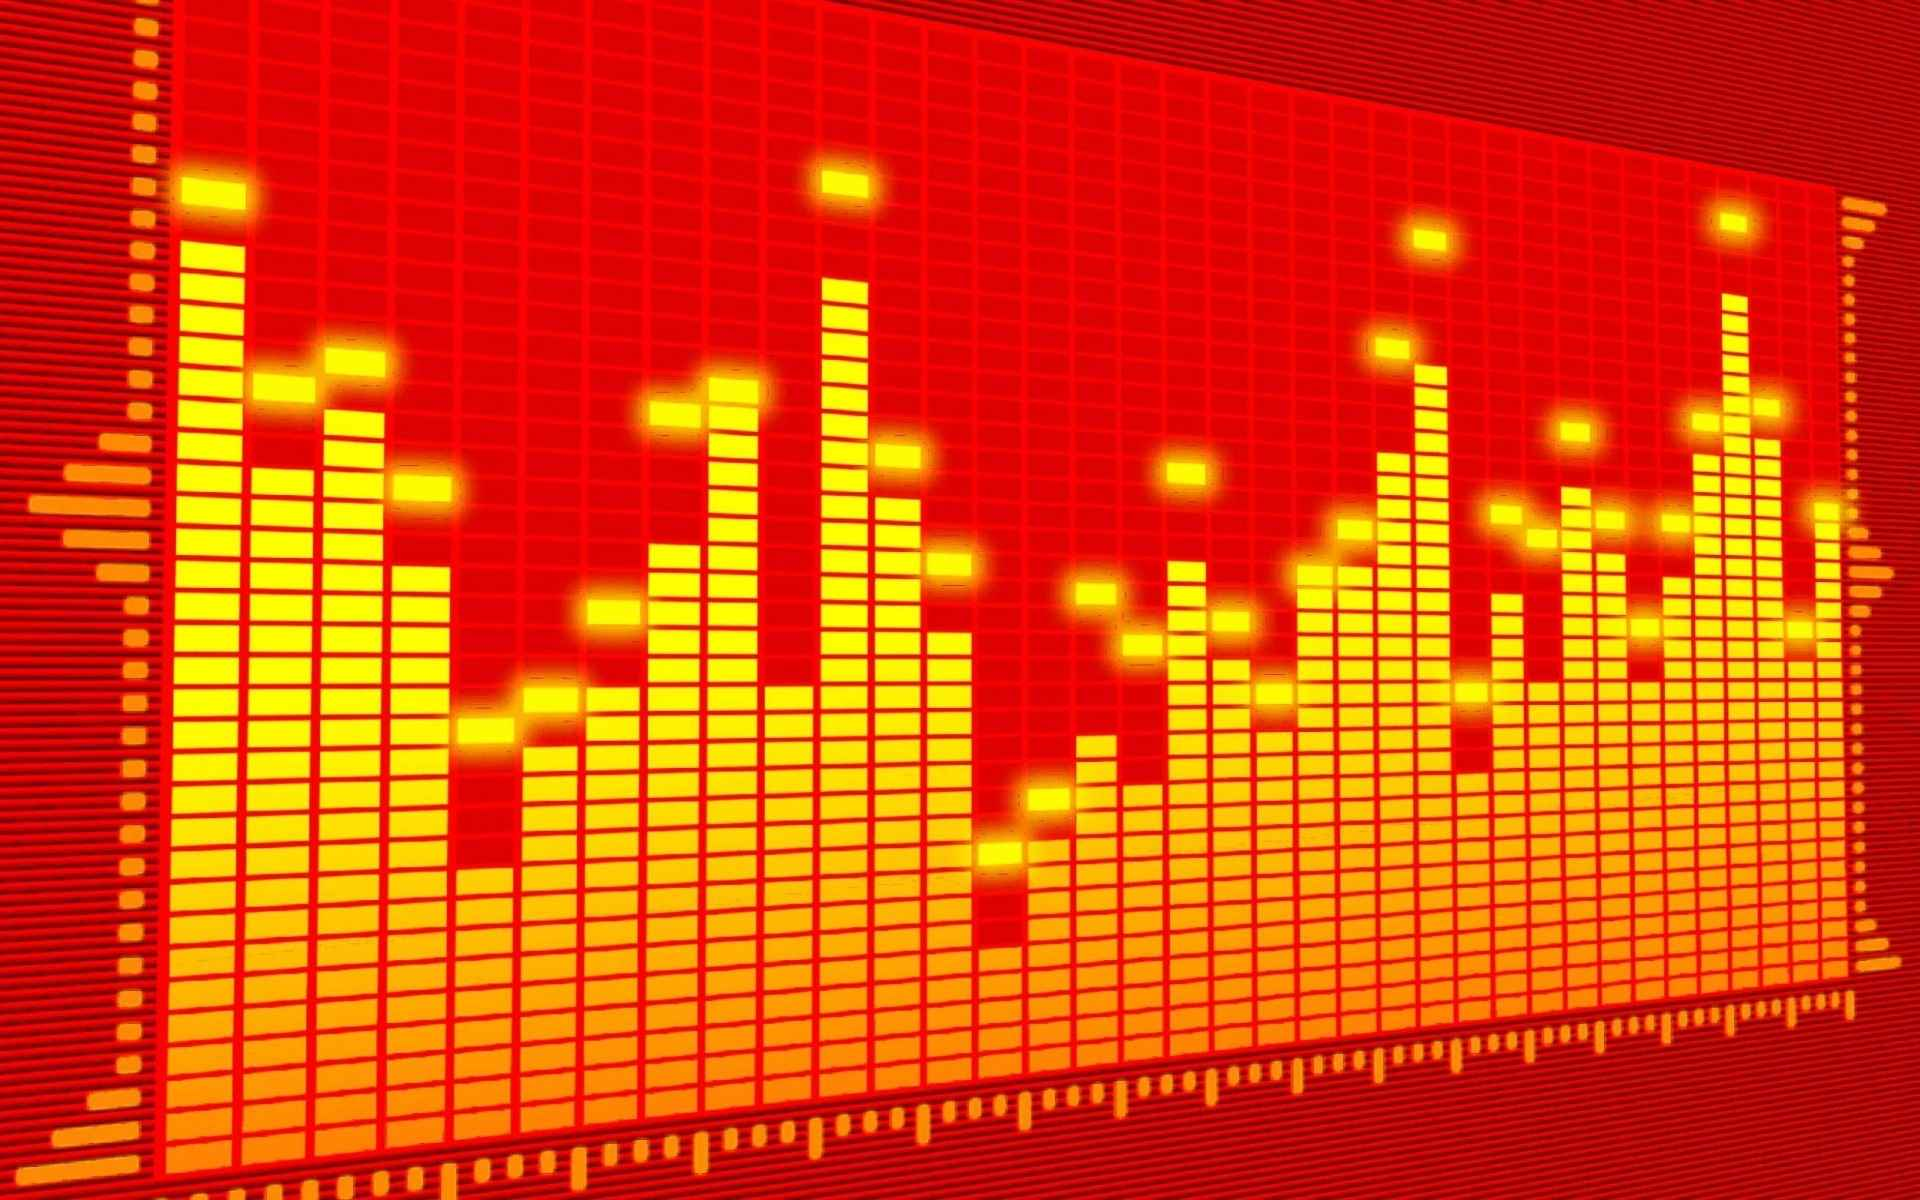 Music Background Wallpaper 029